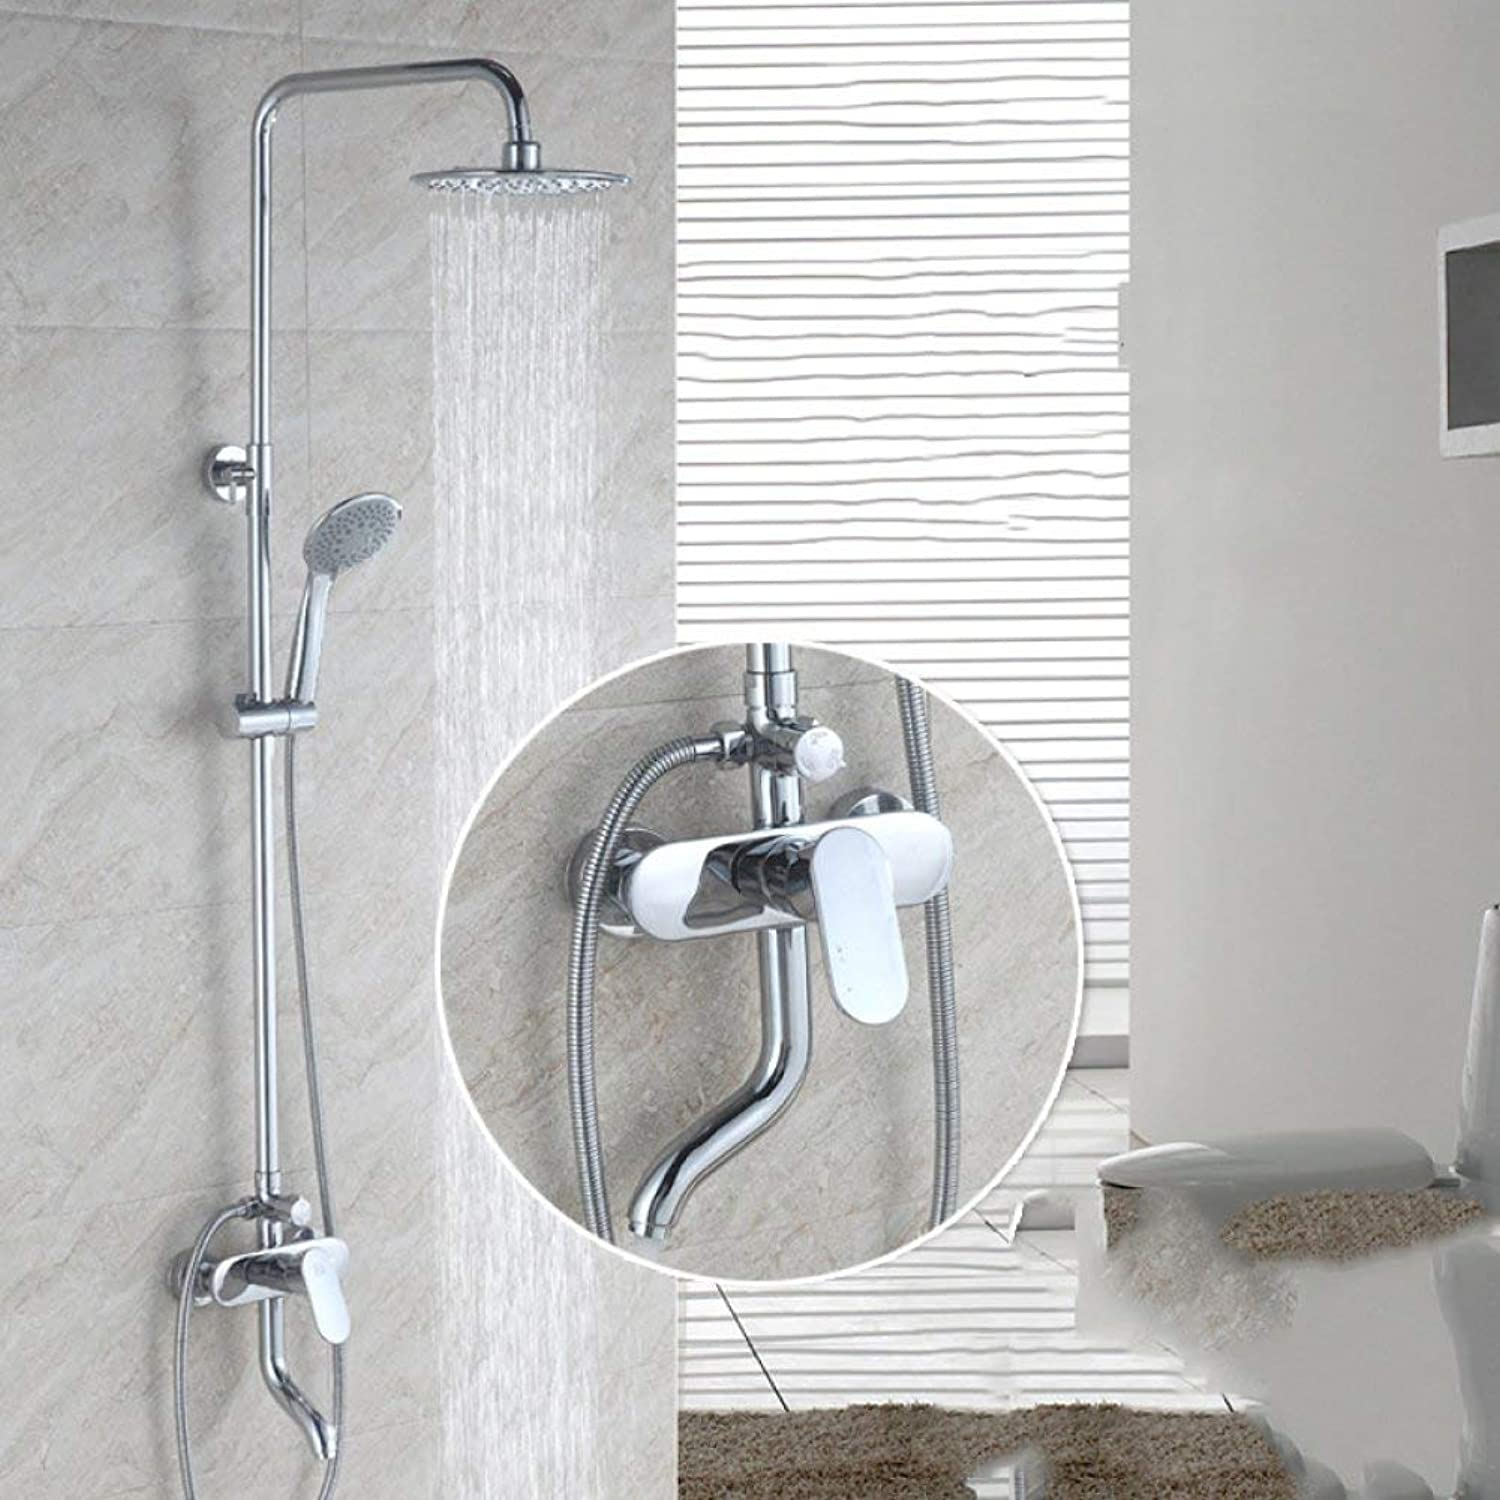 Shower Bath Rooms with All The Bronze Elevator Type Hand Shower a Shower take Note of The Third Report Shower Bath Rooms can The hot & Cold Water Faucet Shower Elevator